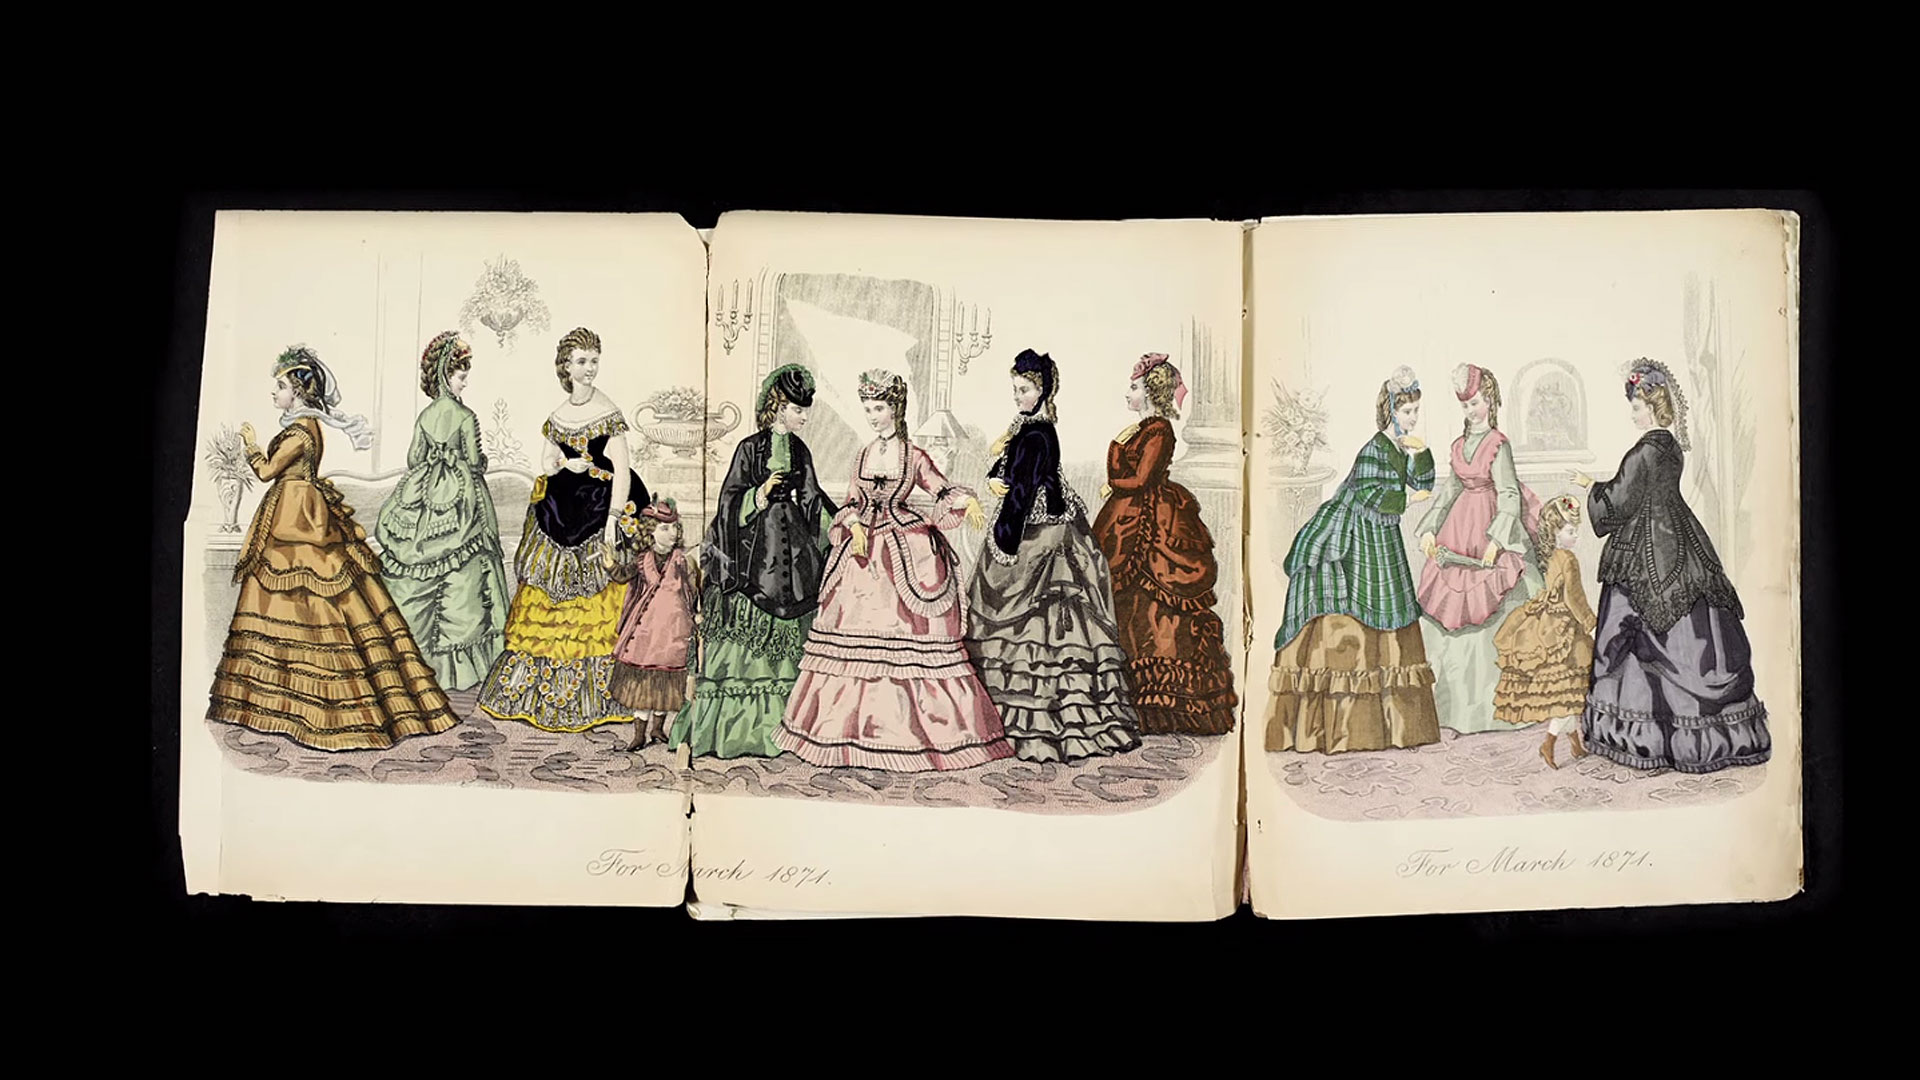 Gender in the 19th century